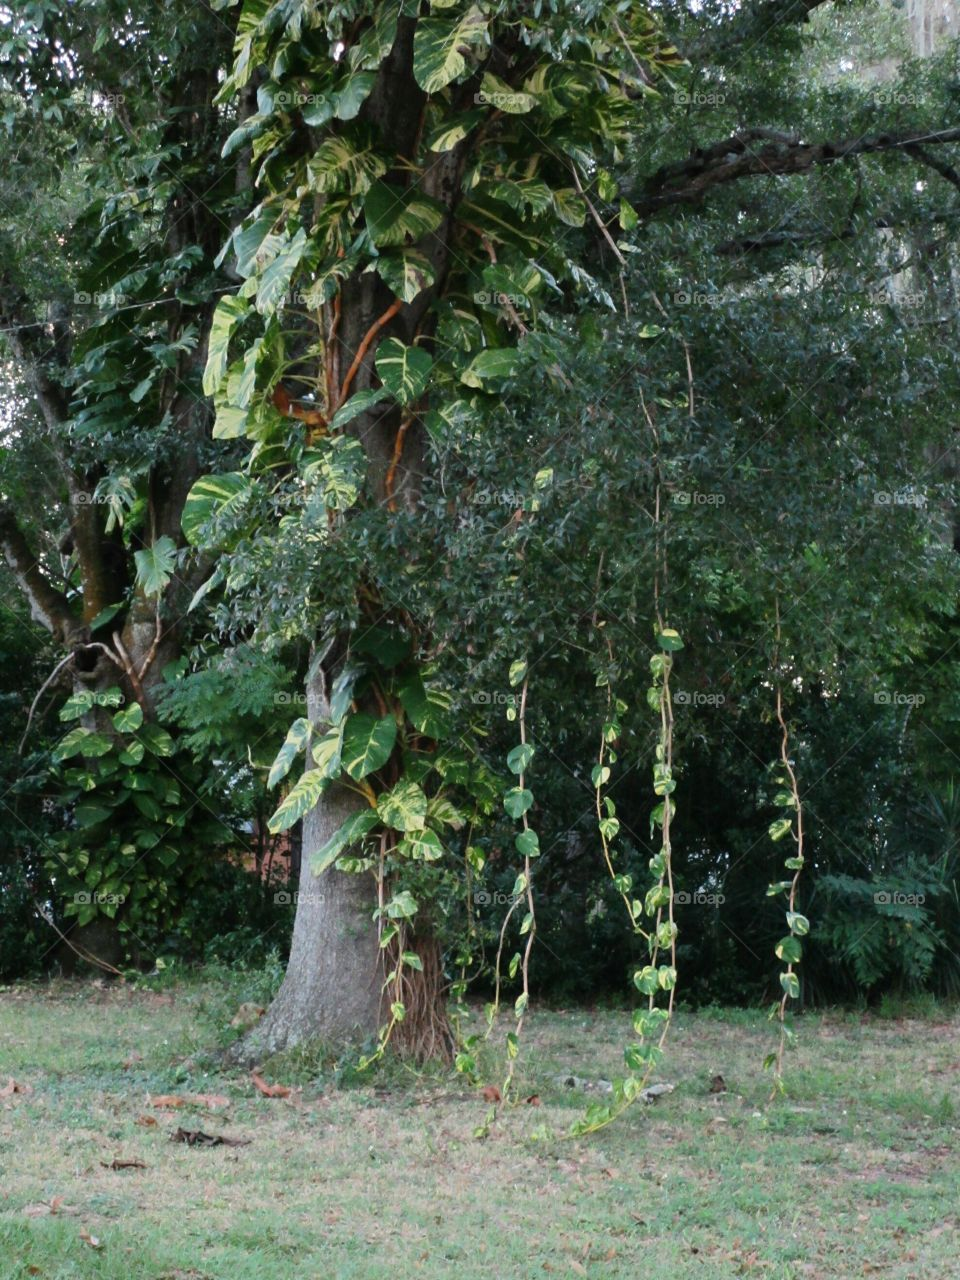 Philodendron vines hanging down from tree